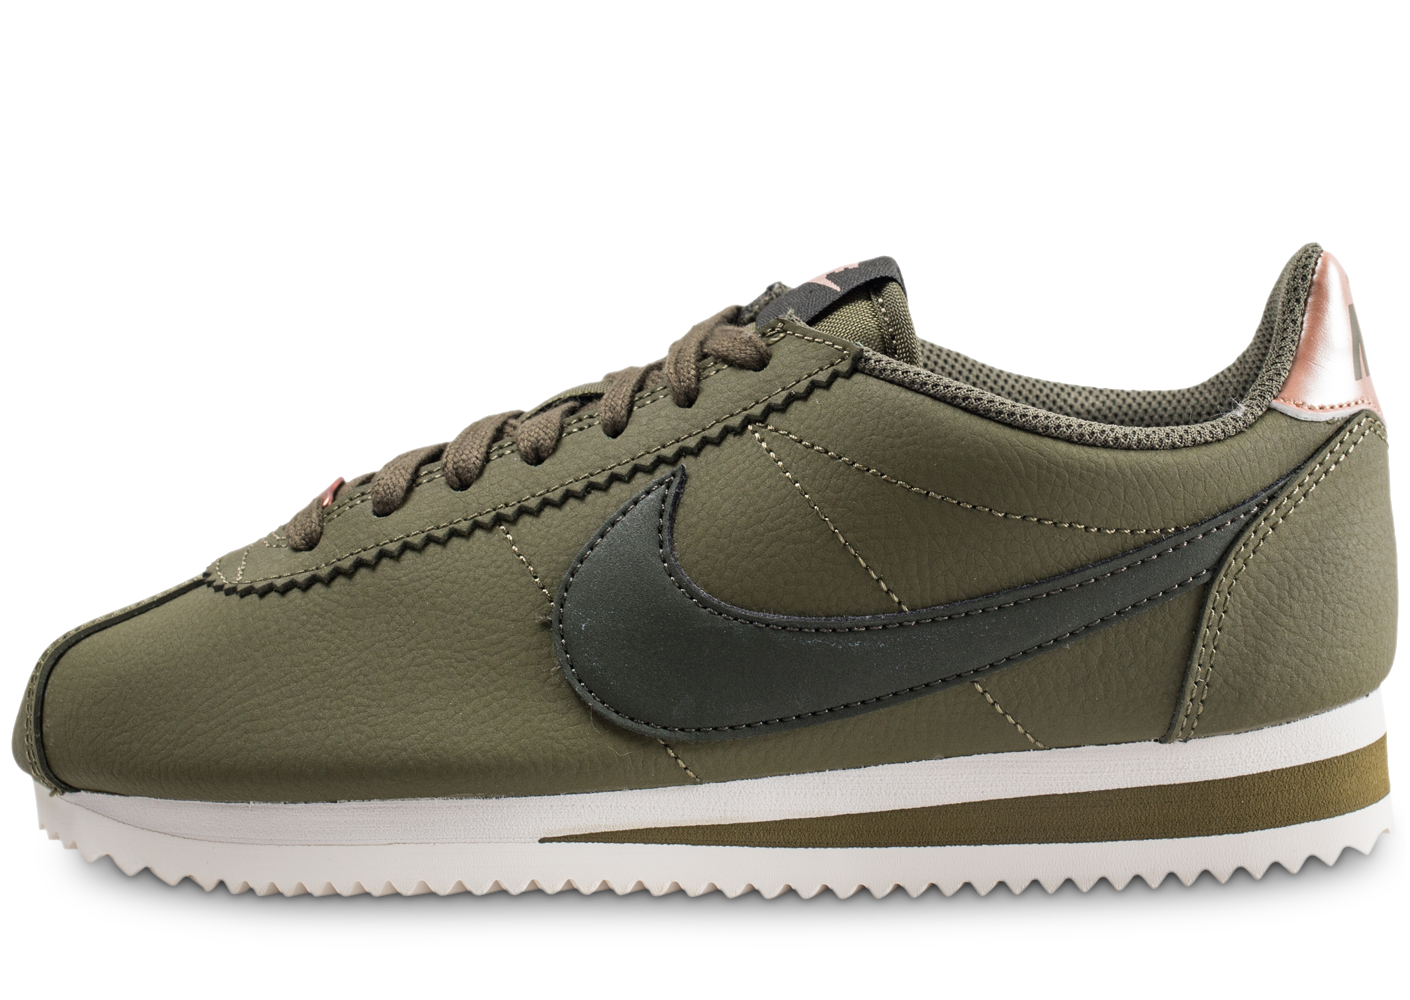 promo code 4012a 14332 Nike classic cortez leather kaki femme baskets